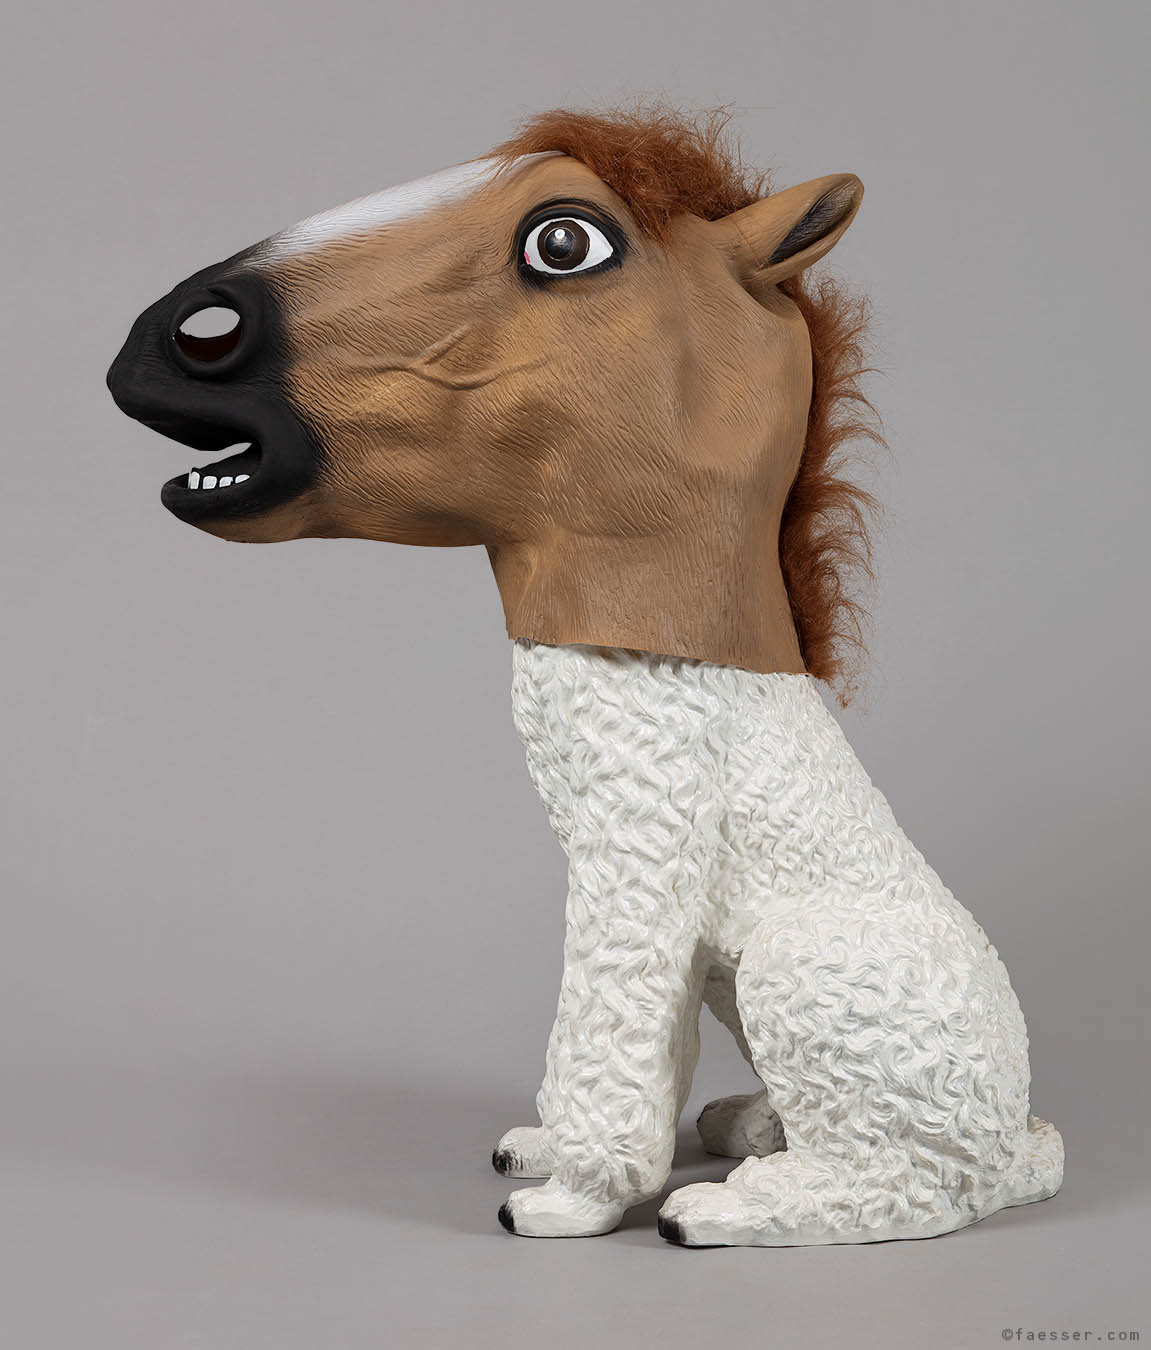 Poodle sculpture with trojan like horse mask; works of art as figurative sculptures; artist Roland Faesser, sculptor and painter 2019